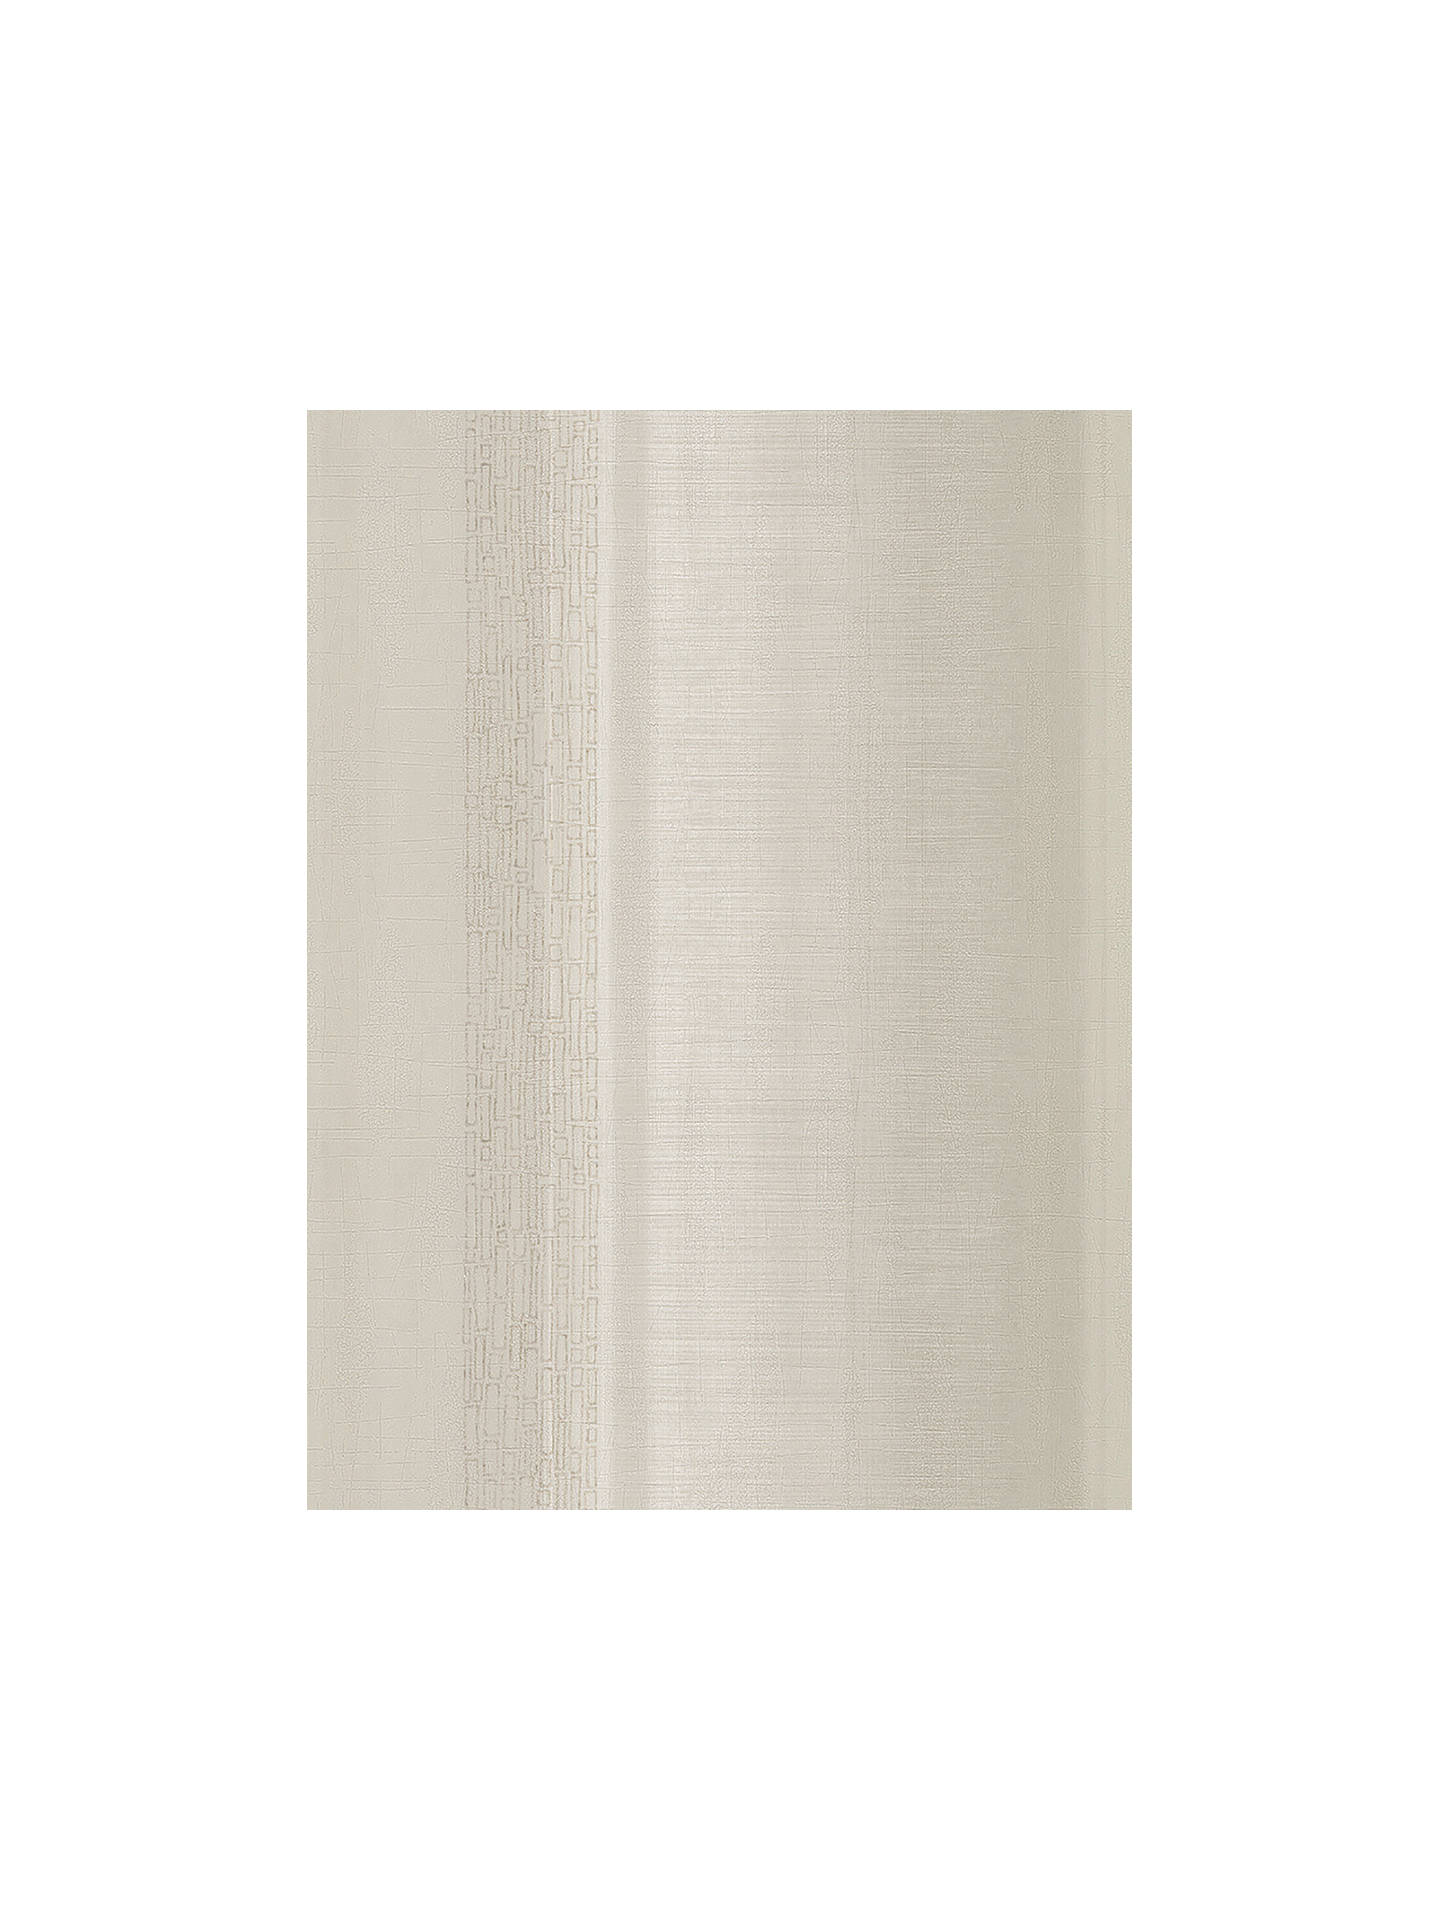 Buy Galerie Stripe Scratch Wallpaper, WP59341 Online at johnlewis.com